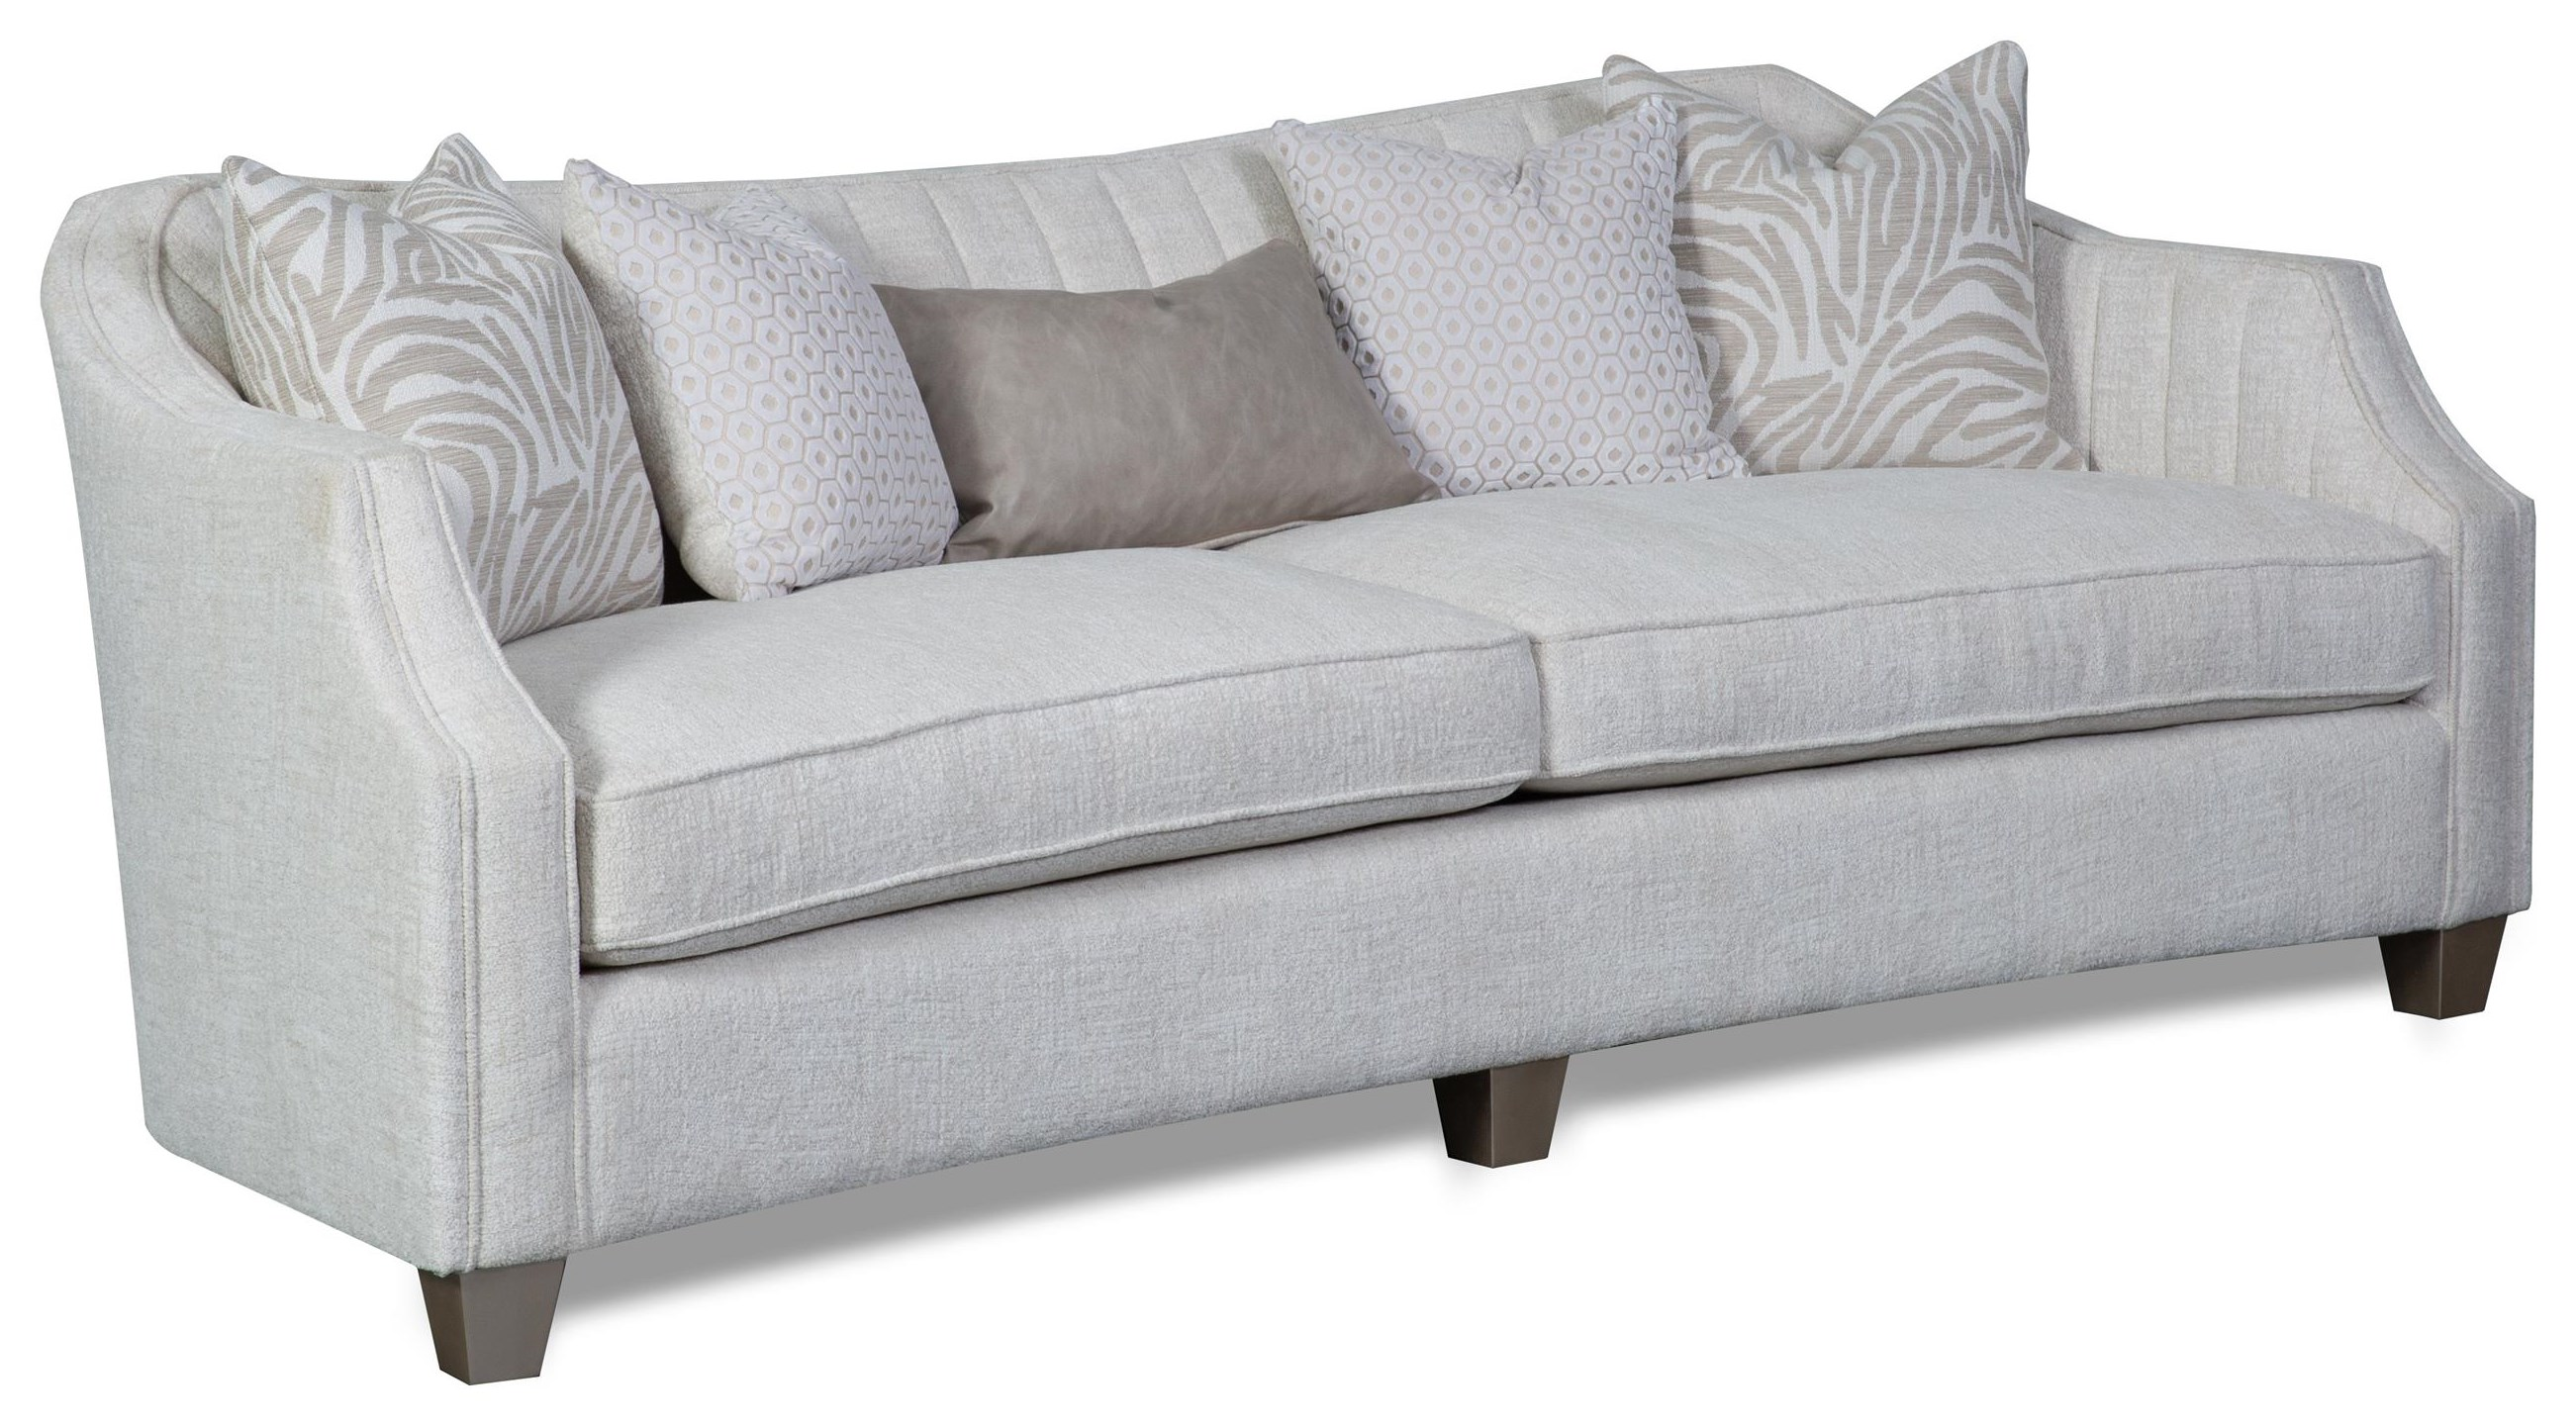 Alaina Sofa by Aria Designs at Stoney Creek Furniture